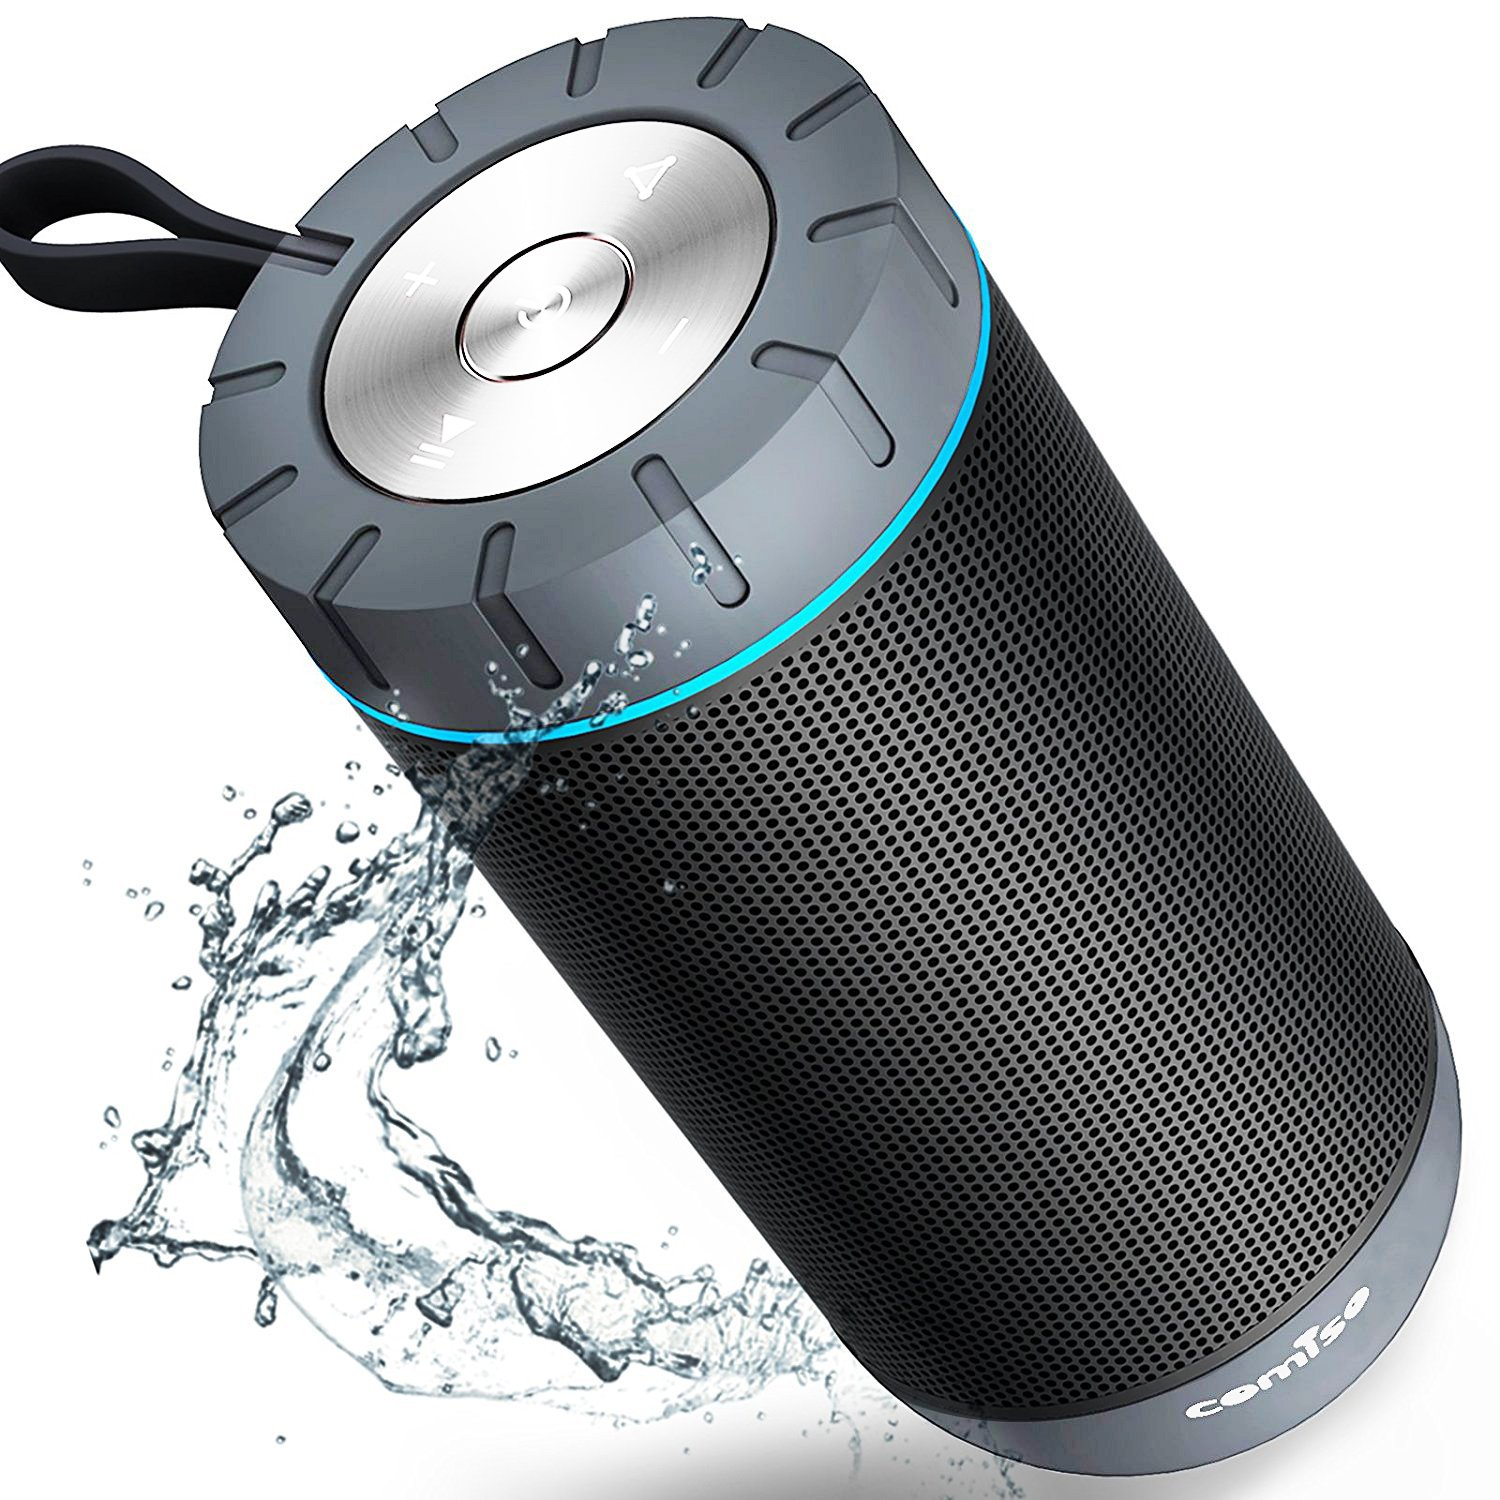 COMISO Waterproof Bluetooth Speakers Outdoor Wireless Portable Speaker with 24 Hours Playtime Superior Sound for Camping, Beach, Sports, Pool Party, Shower (Black) by COMISO (Image #1)